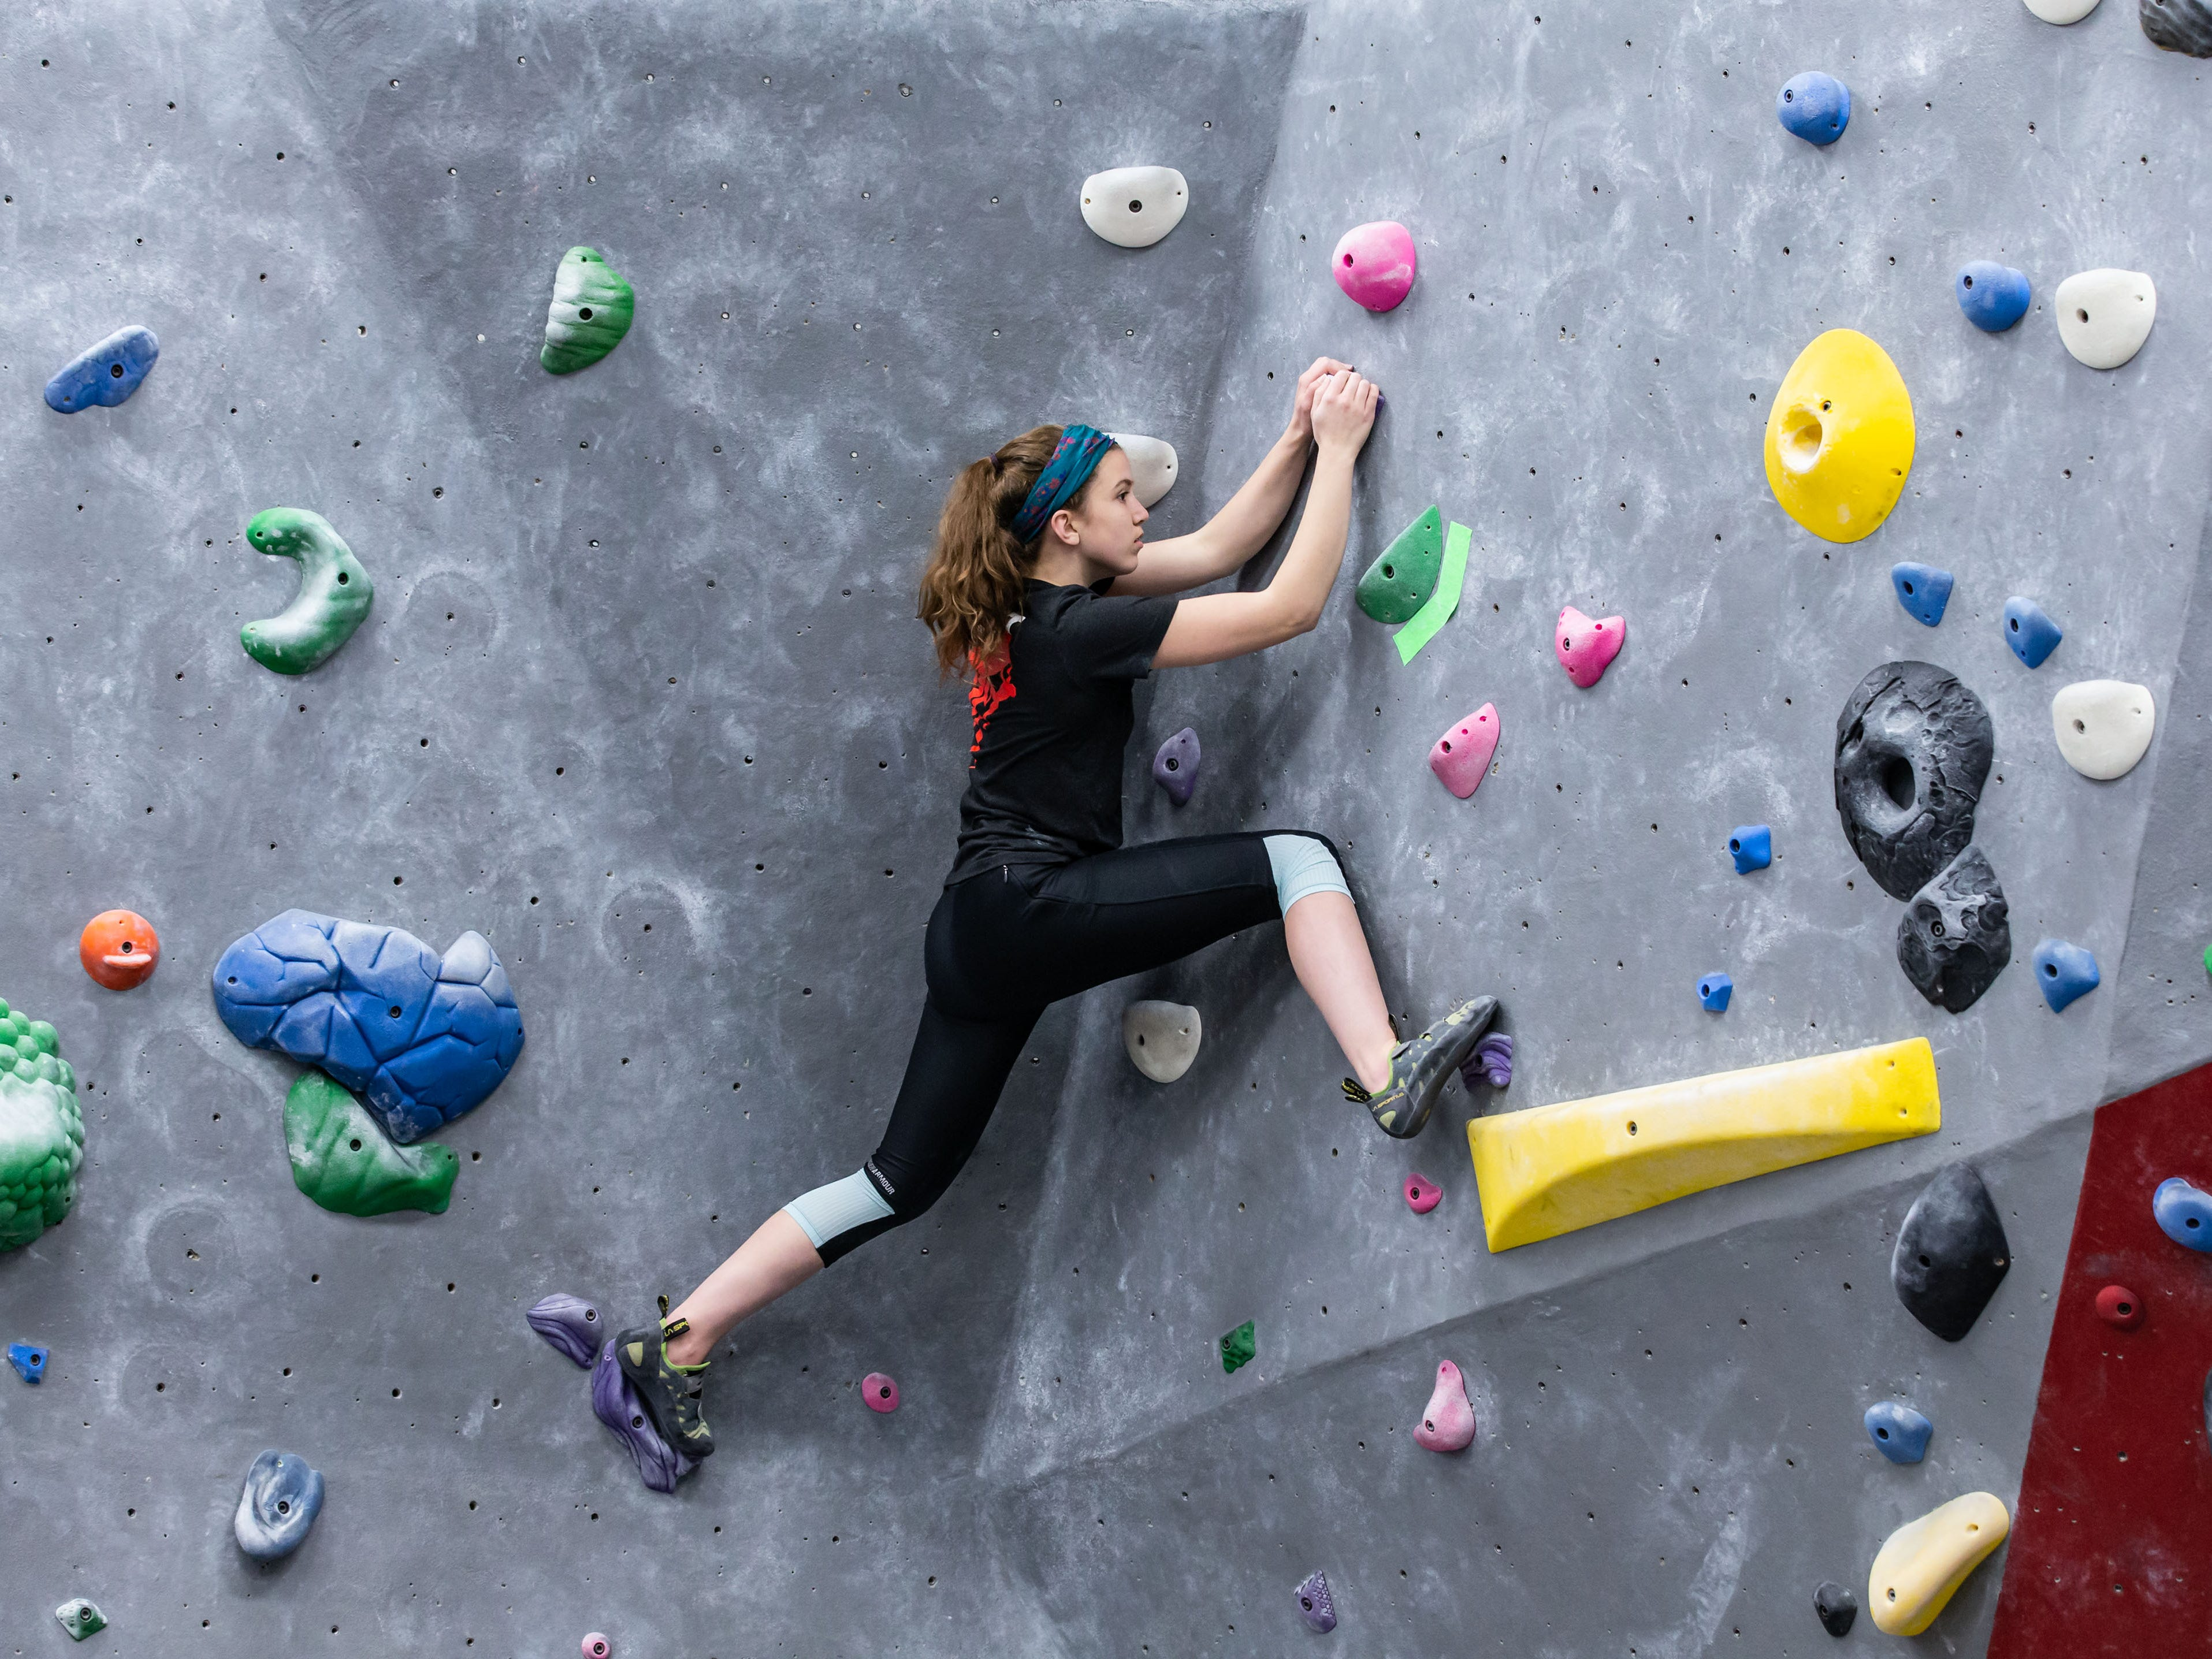 Brookfield East junior Leah Eddinger scales a bouldering wall during practice with her high school climbing team at Adventure Rock in Brookfield on Monday, Jan. 7, 2019.